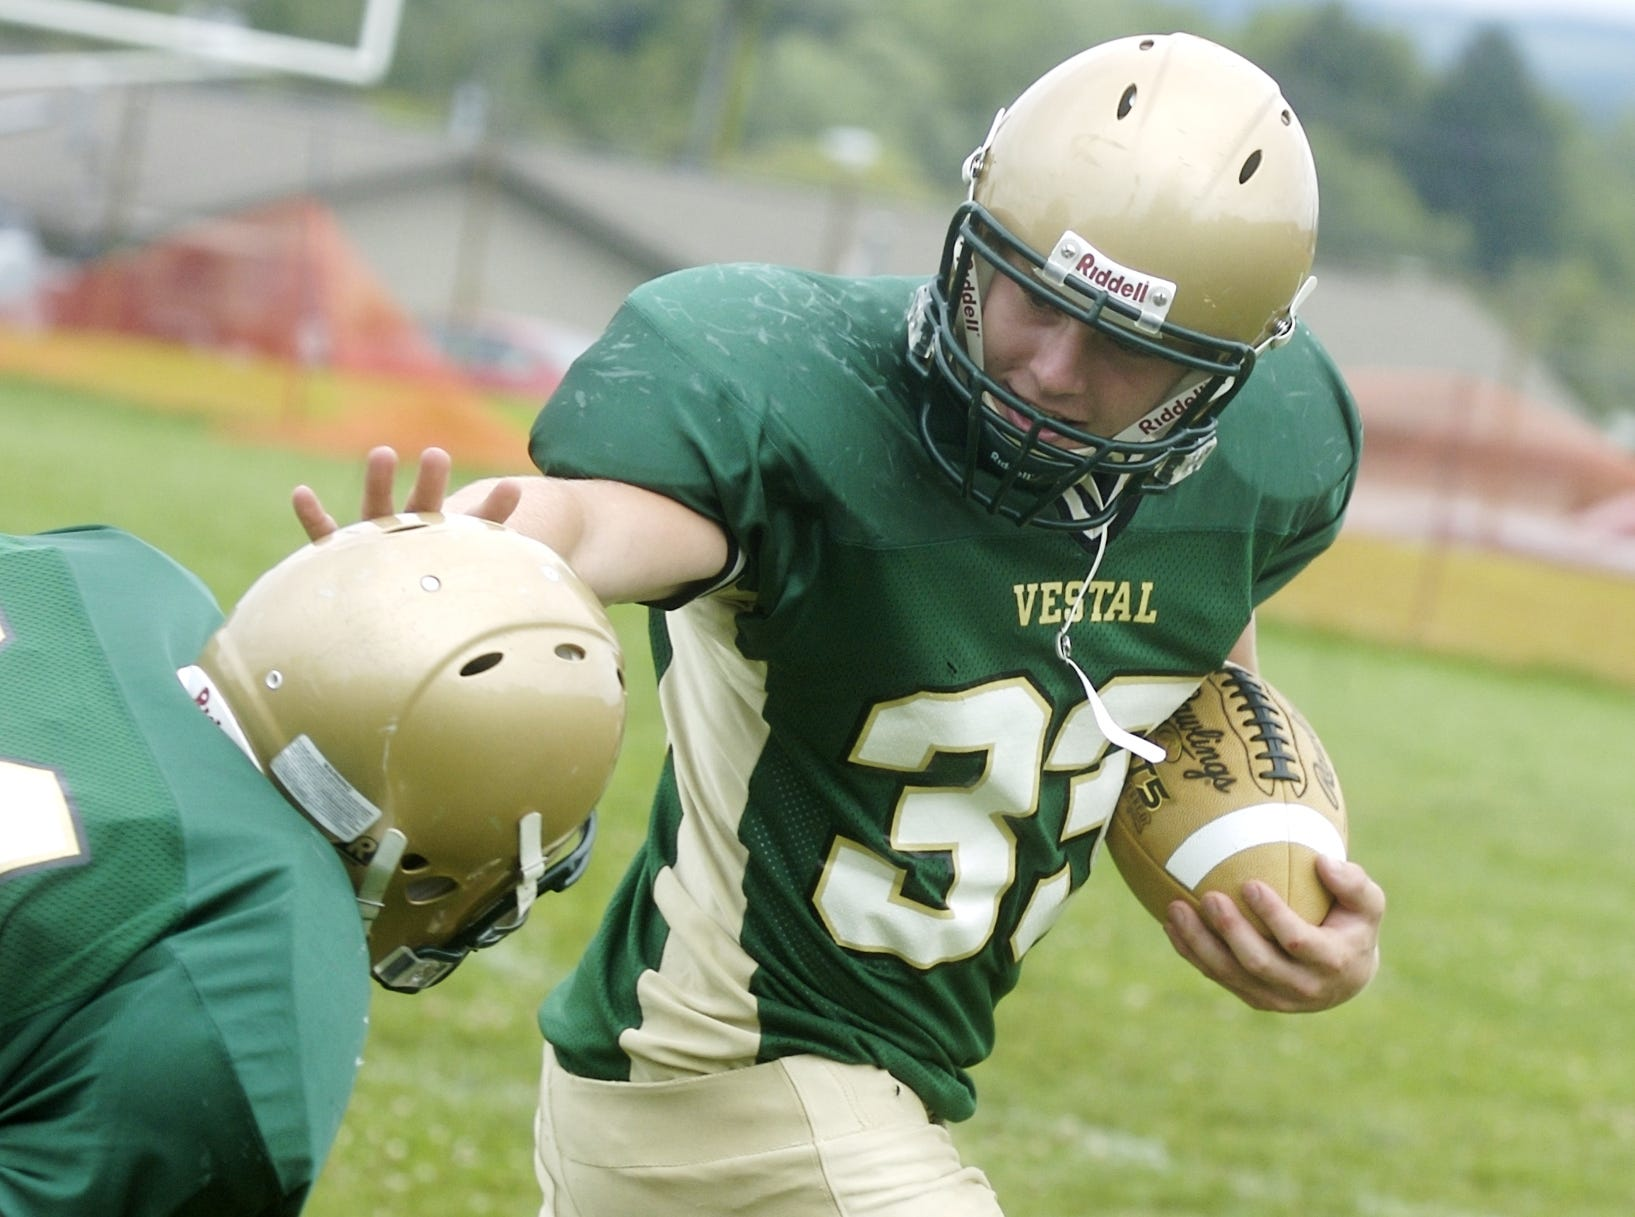 Vestal High School football- #33, Chris Cook, 2007